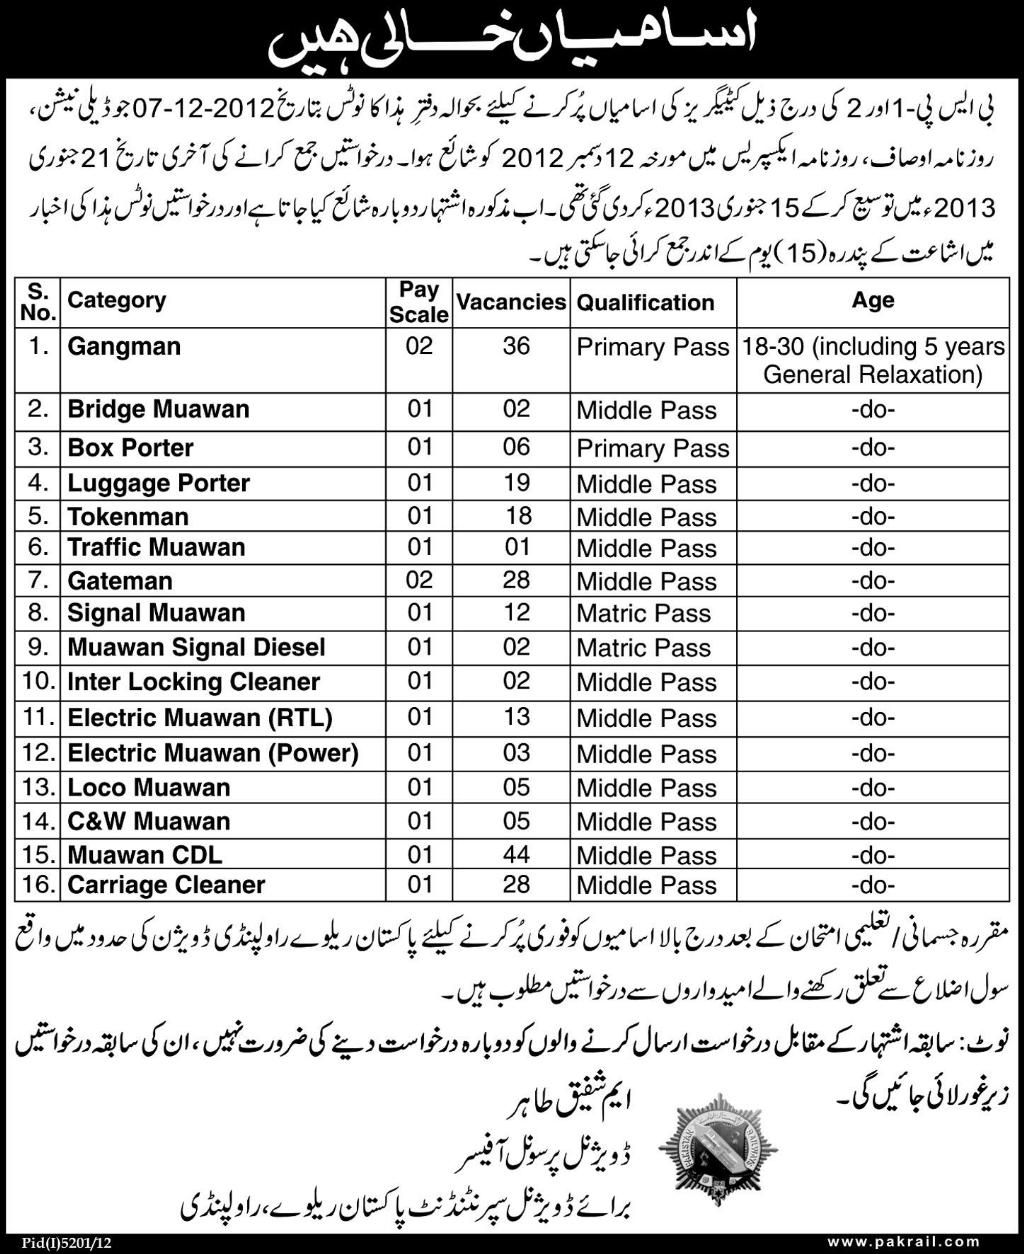 government jobs in pakistan today, government jobs in